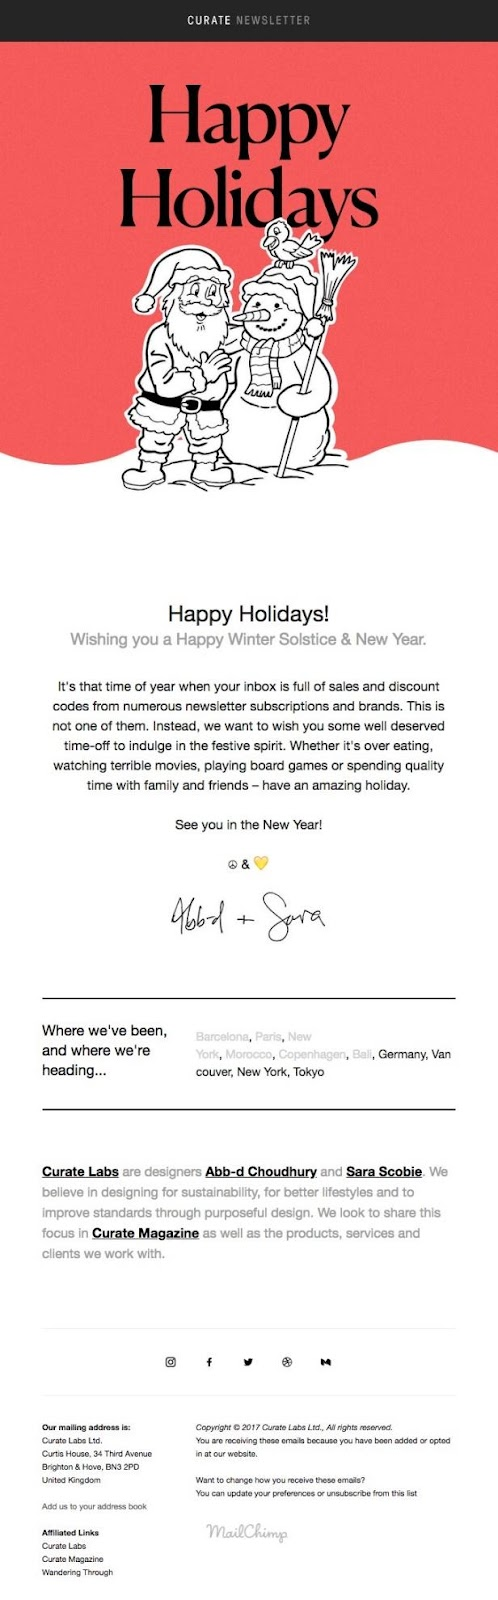 Curate Labs not only wishes their readers a happy holidays, but a happy New Year & Winter Solstice too